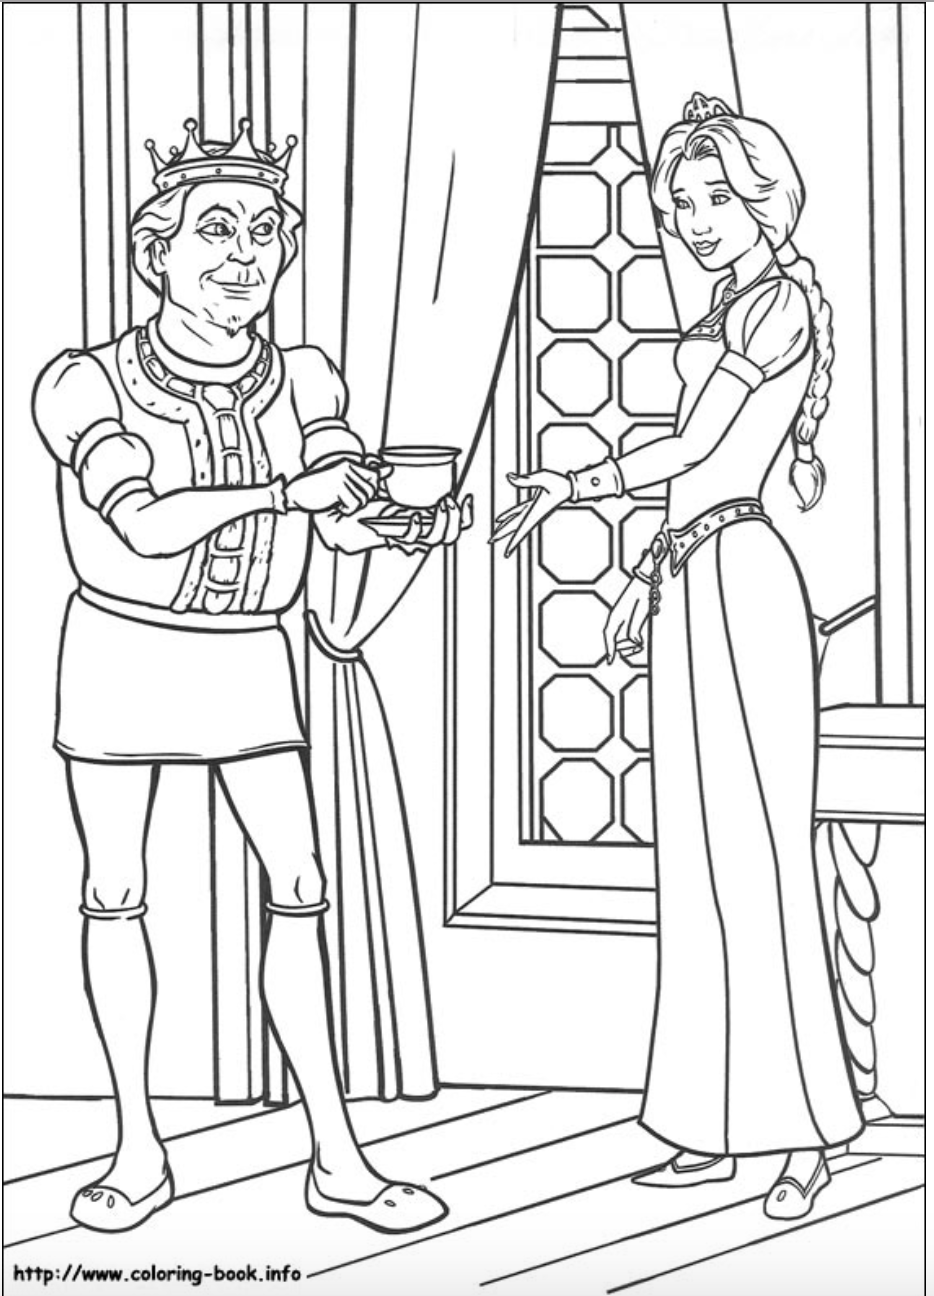 Princess Fiona and her Father, King Harold coloring page from Shrek ...